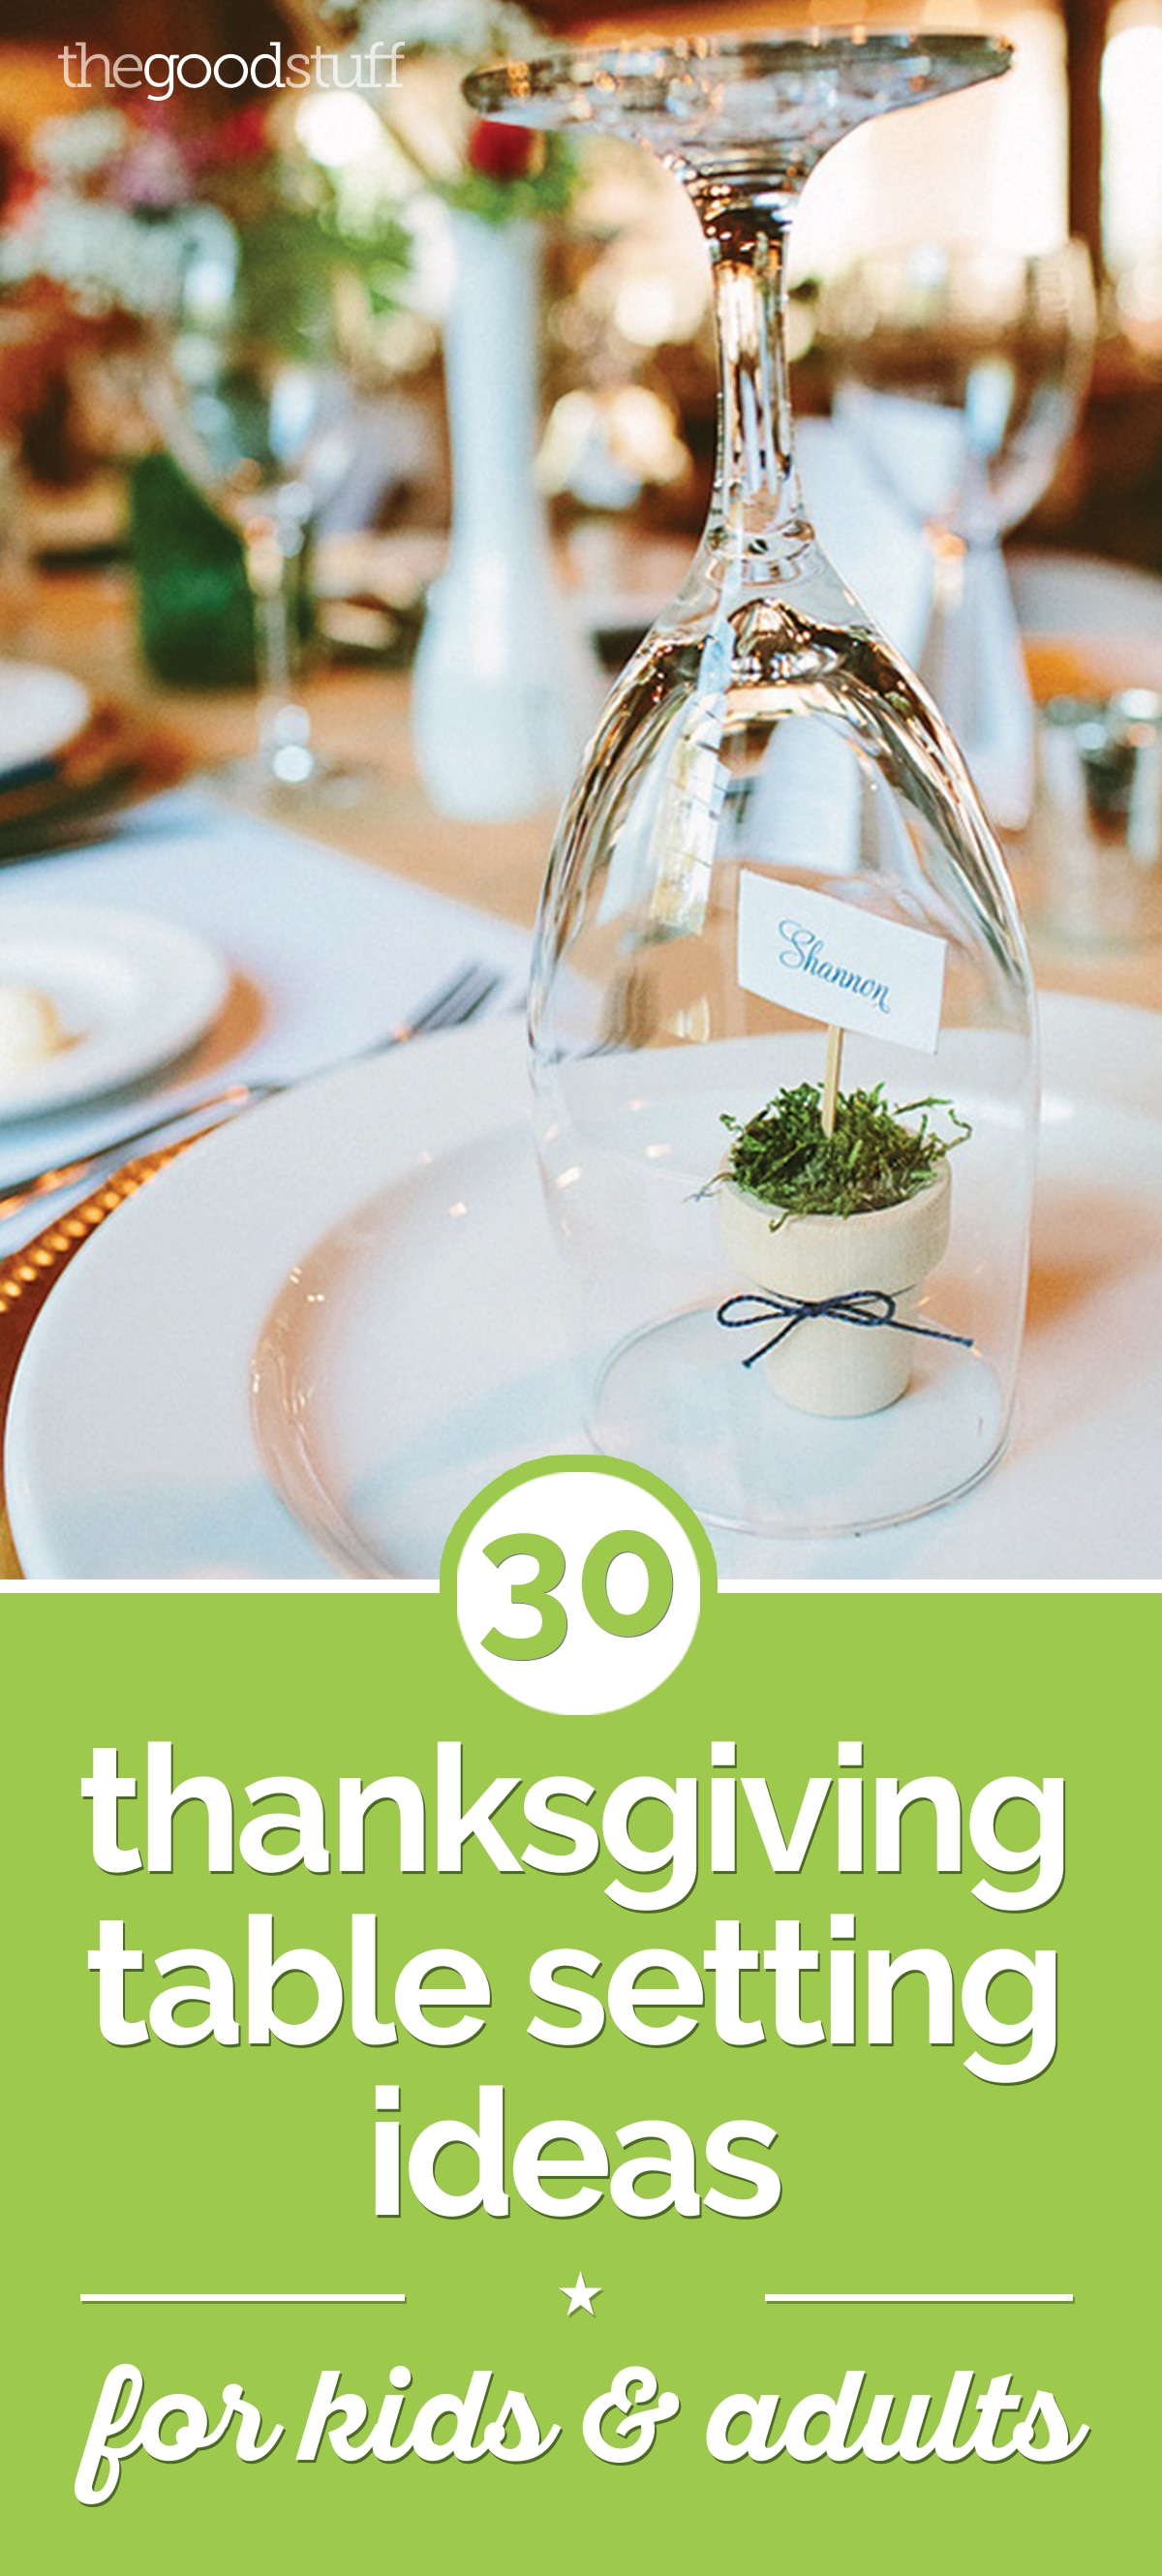 31 thanksgiving table setting ideas for kids adults Cheap thanksgiving table setting ideas